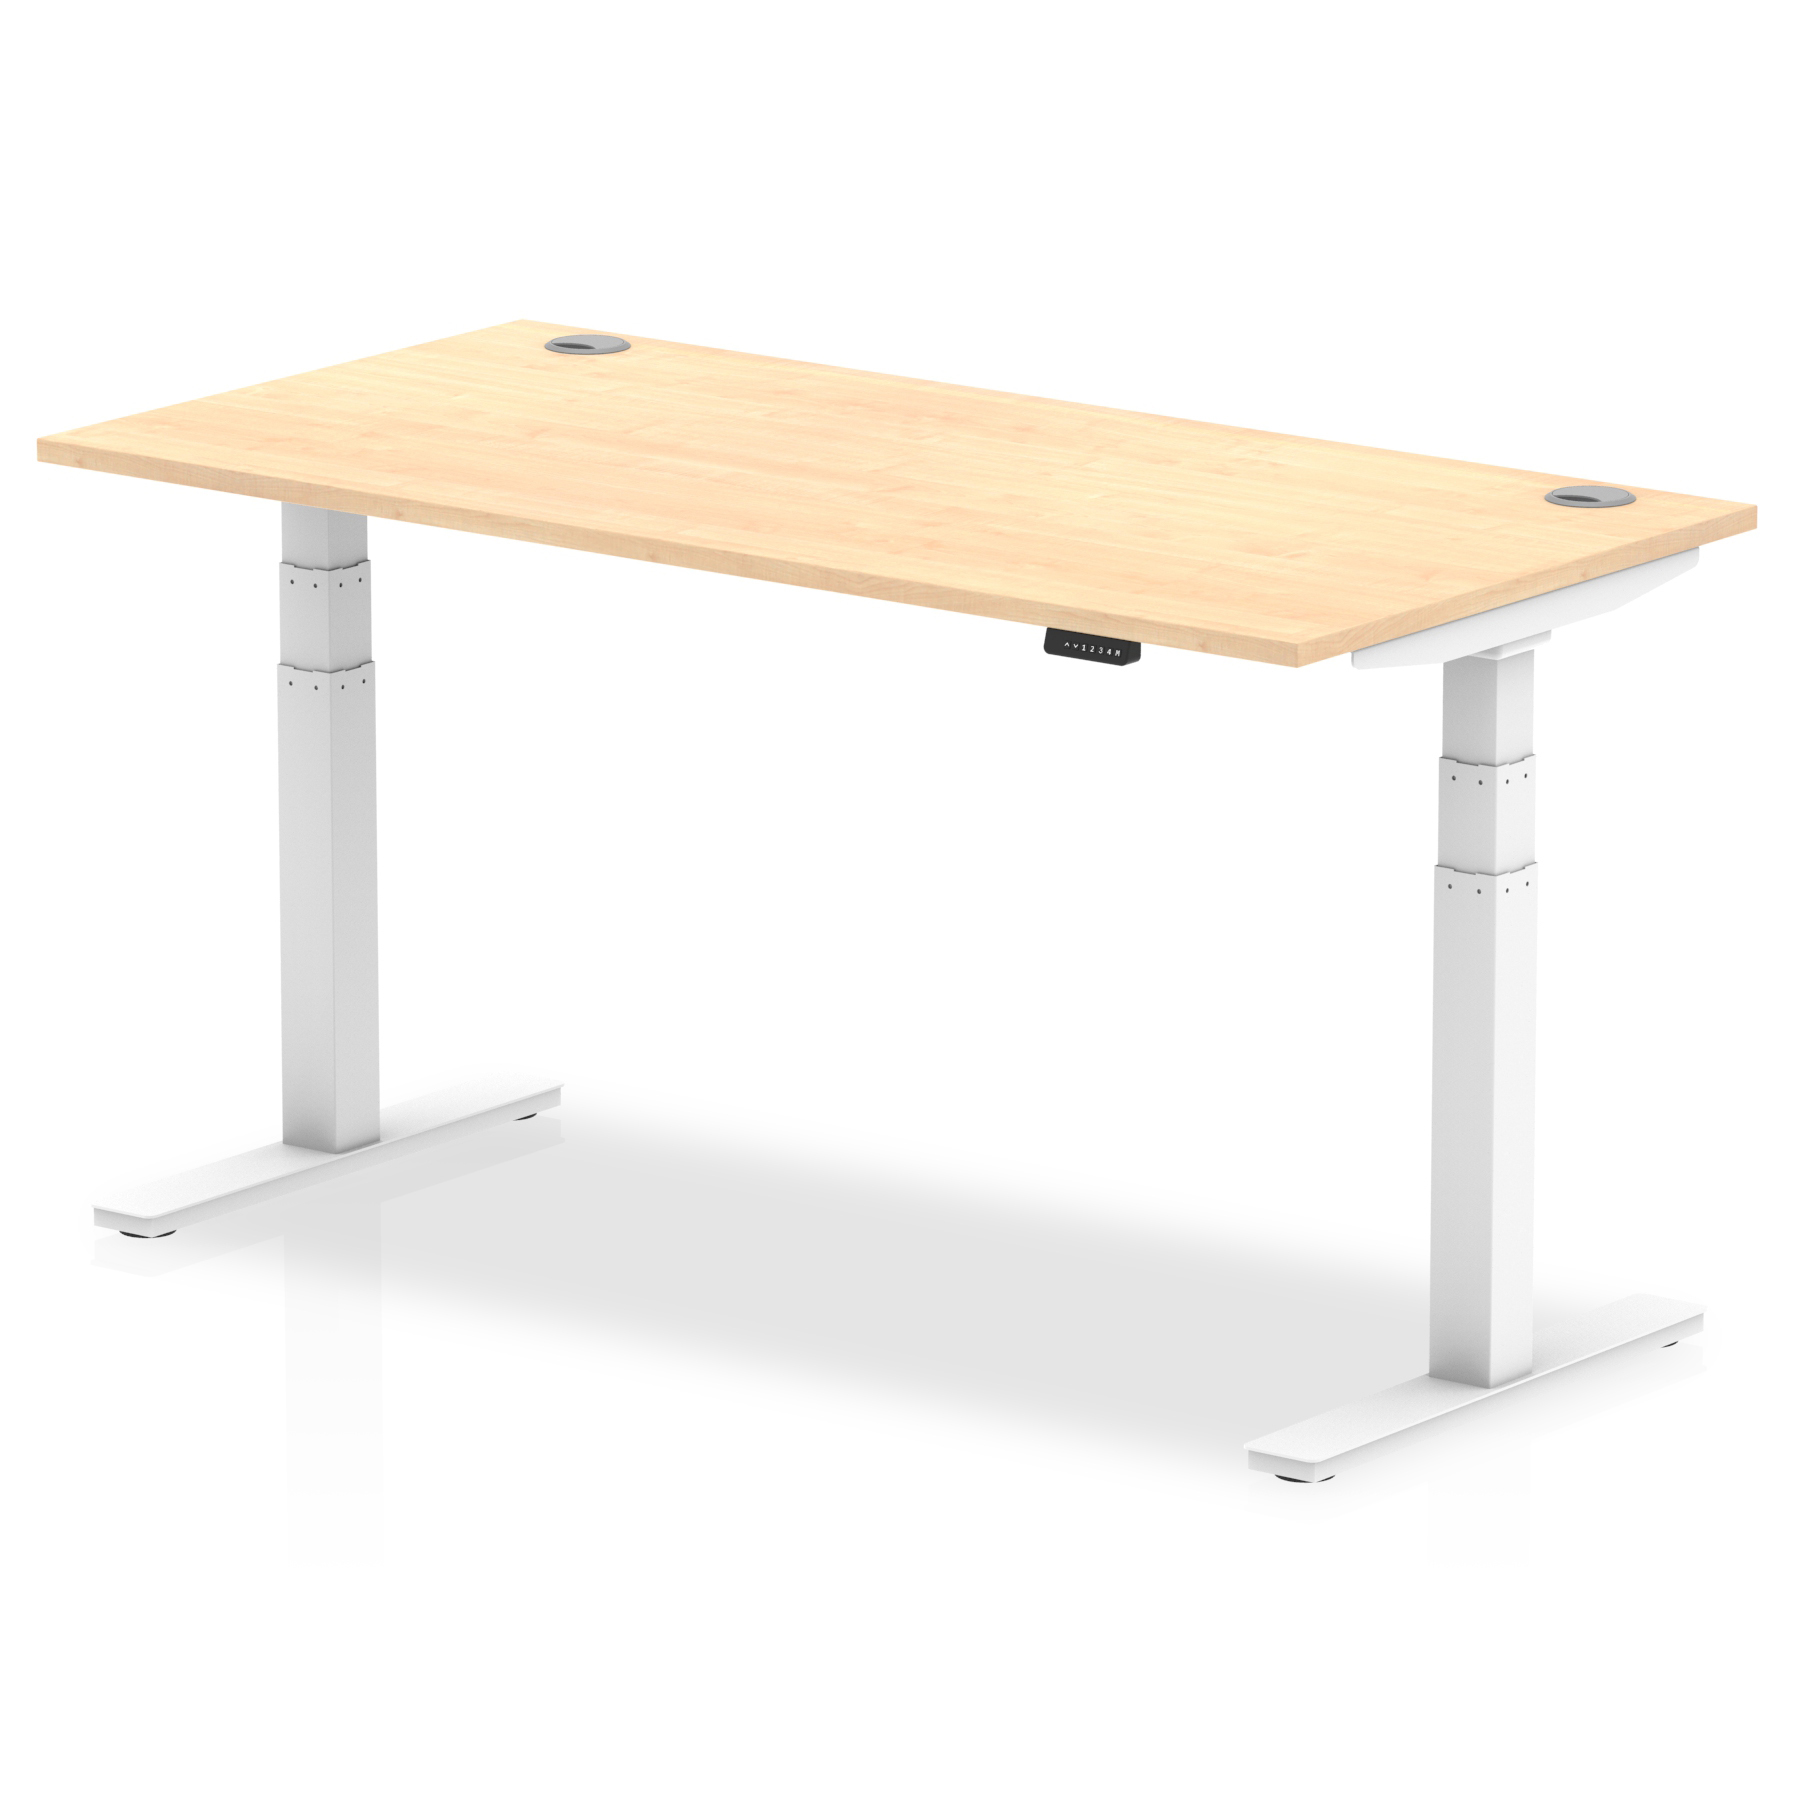 Trexus Sit Stand Desk With Cable Ports White Legs 1600x800mm Maple Ref HA01115